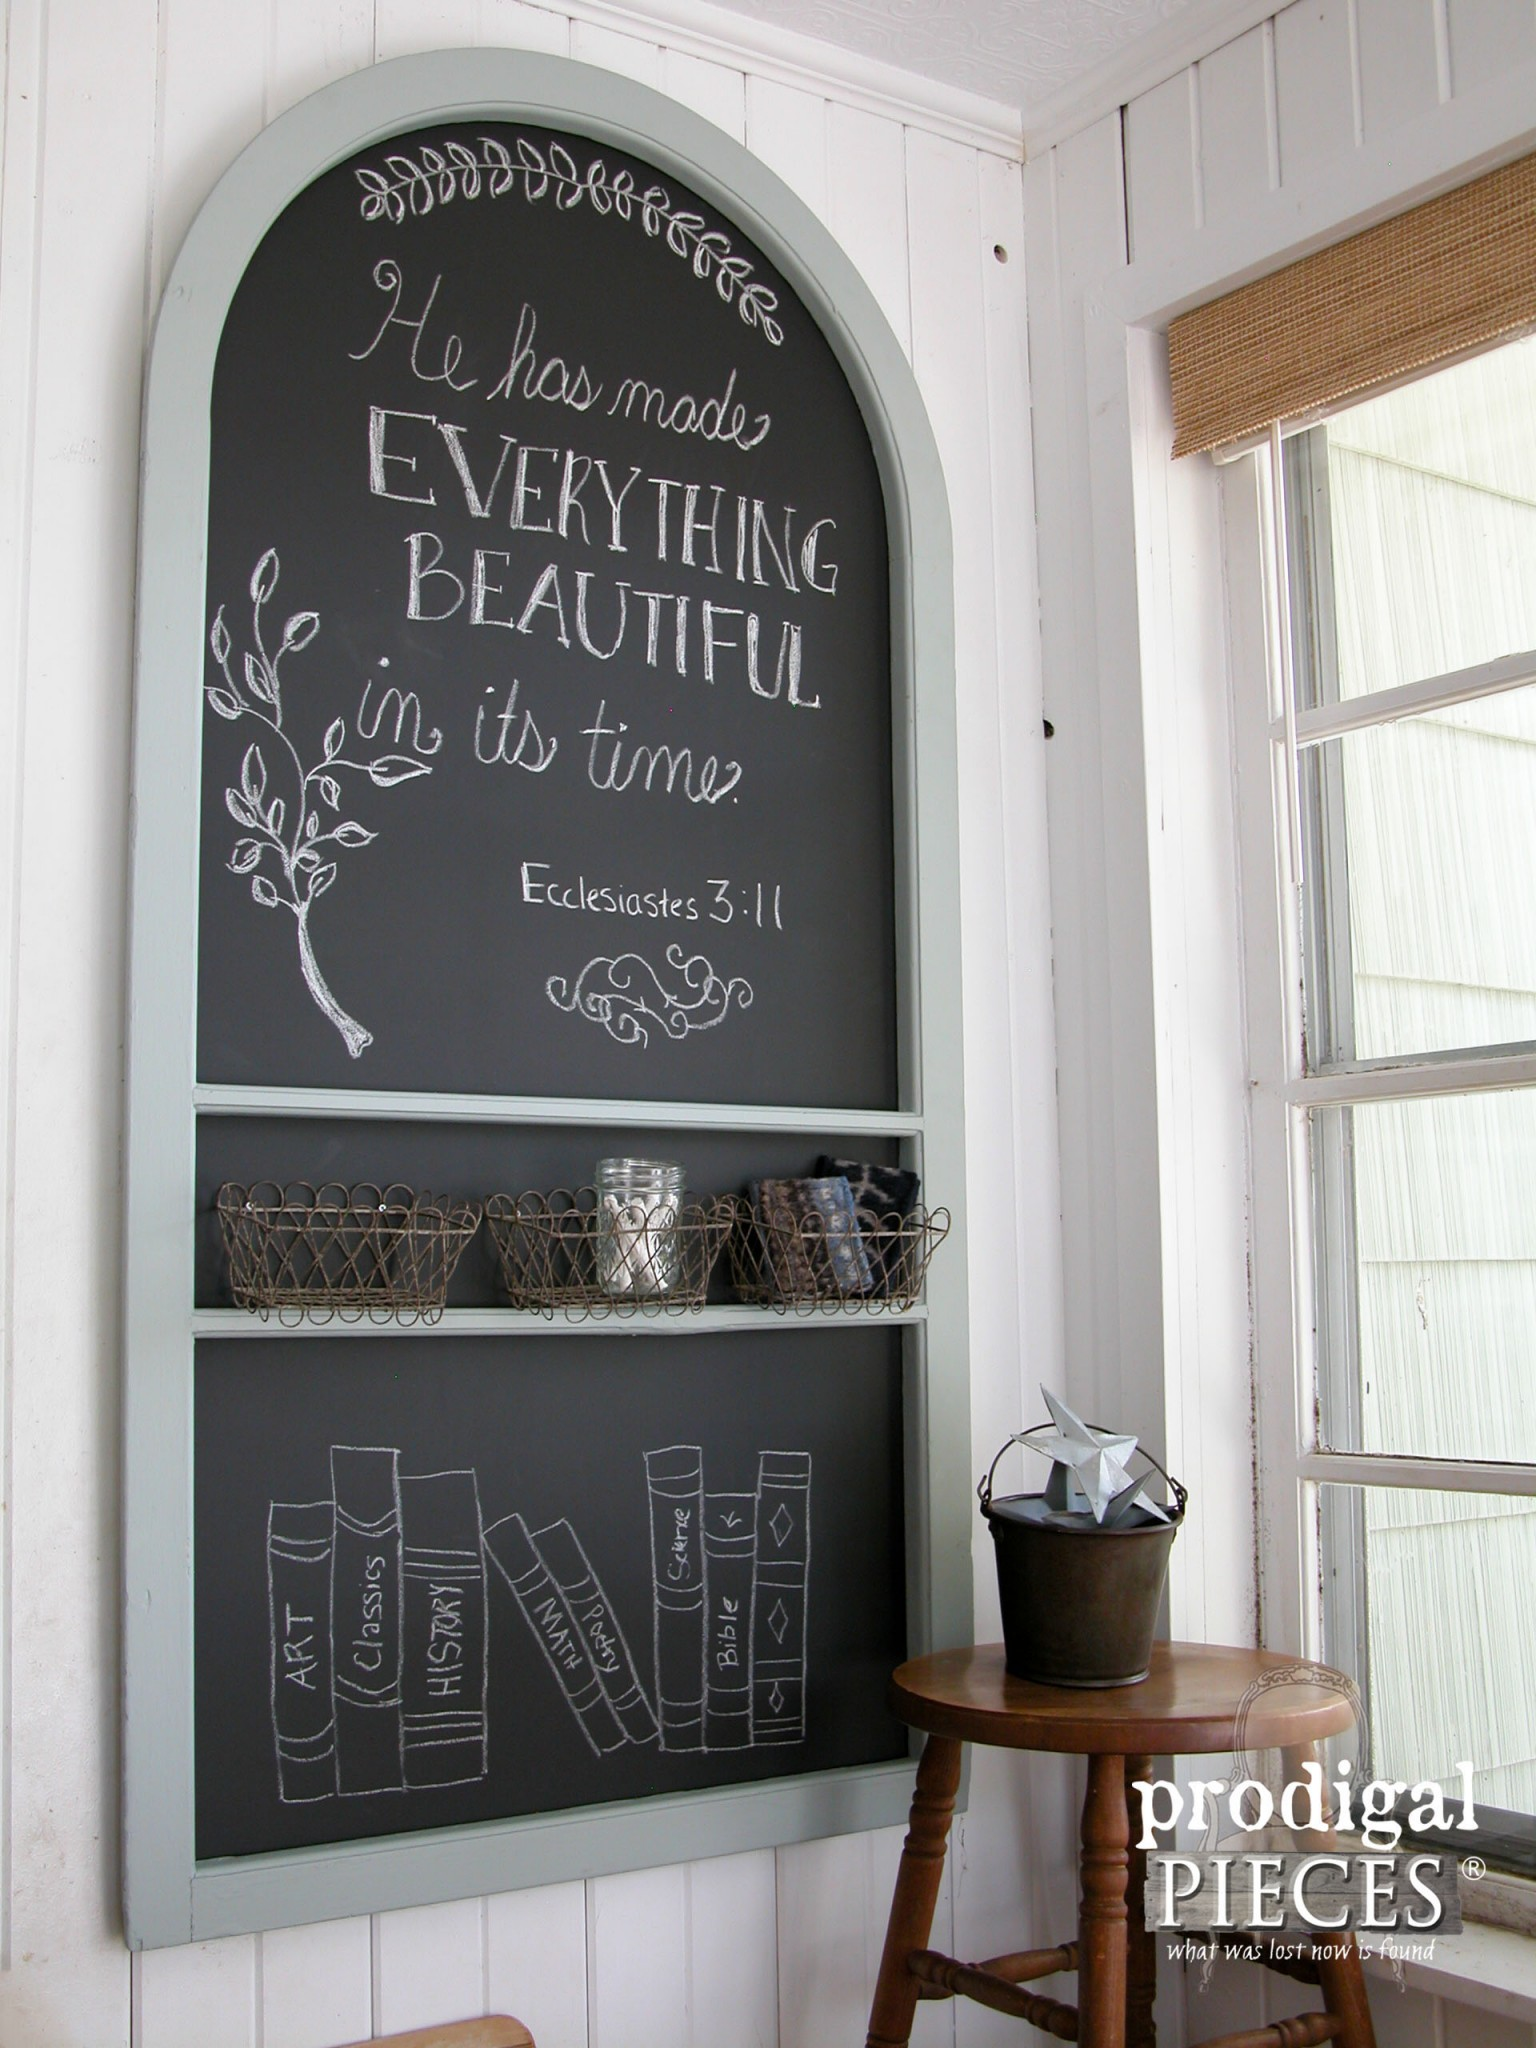 Wall-Mounted Repurposed Screen Door Chalkboard By Prodigal Pieces |  .prodigalpieces.com